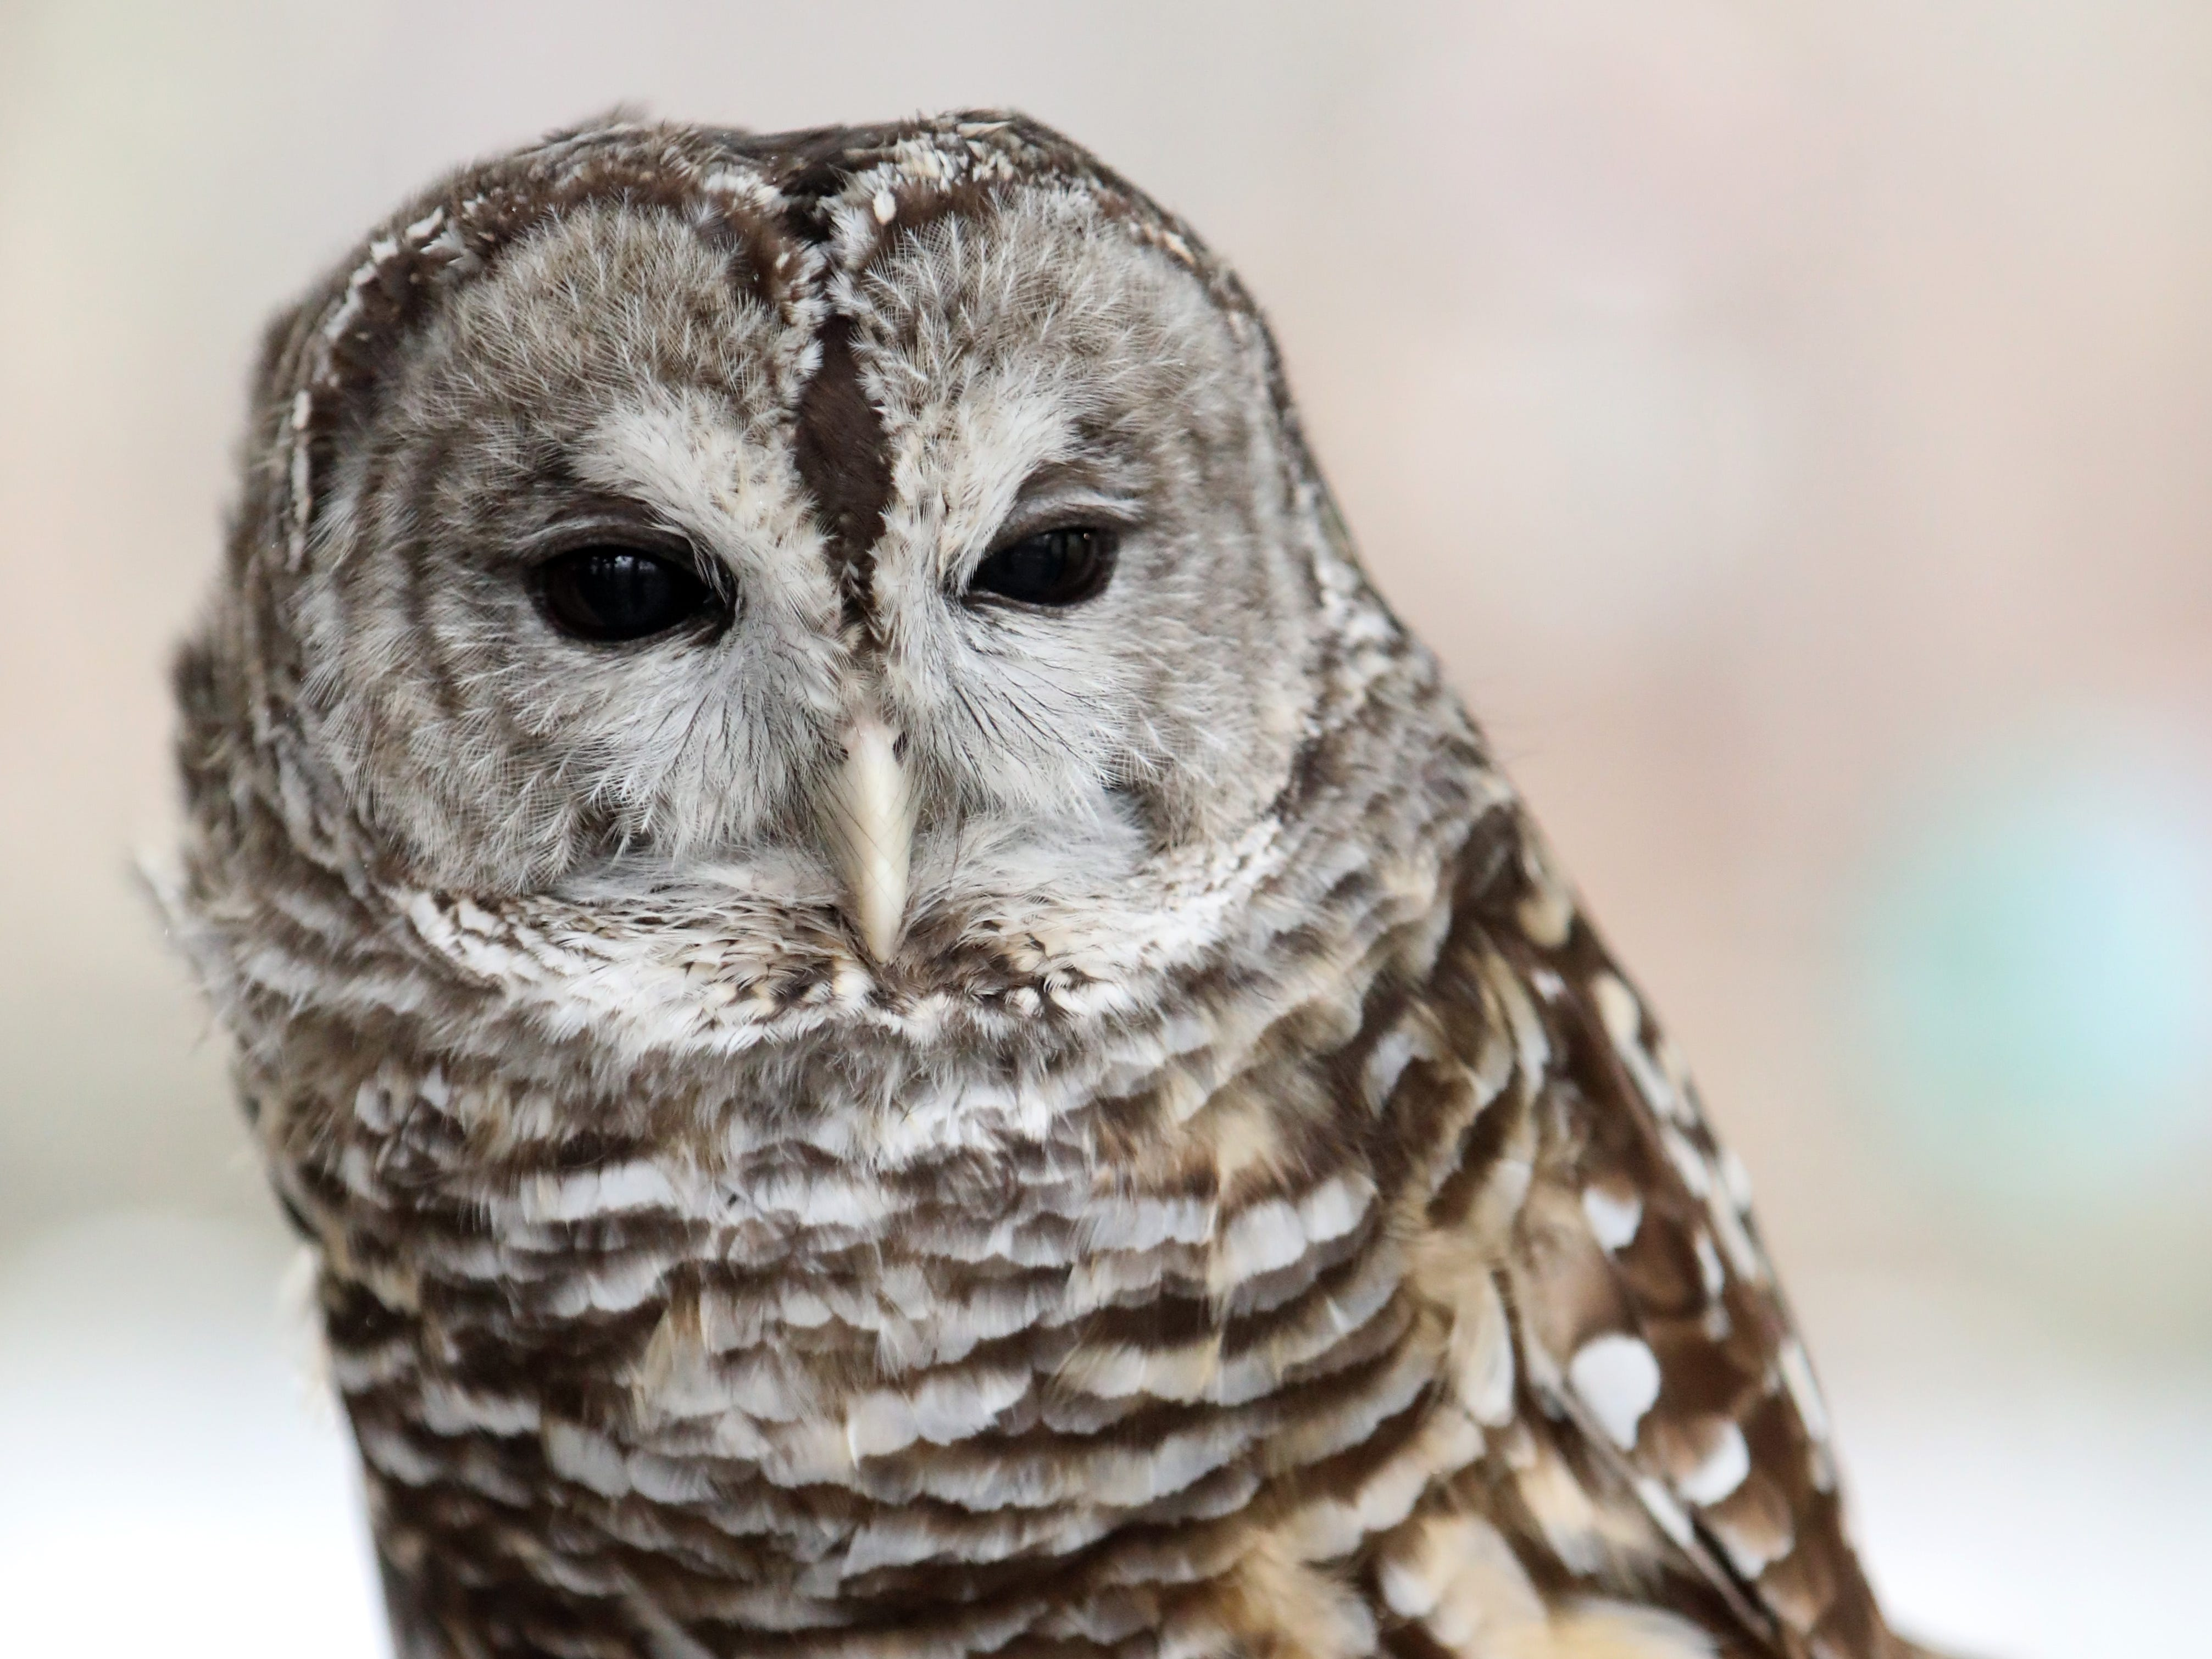 Nova, a barred owl, at Teatown Lake Reservation in Ossining helps introduce EagleFest Jan. 24, 2019. The environmental education center announced plans for its 15th annual Teatown Hudson River EagleFest, which will take place on Saturday, February 9 at Croton Point Park in Croton-on-Hudson to celebrate the return of the bald eagle to the Hudson River Valley.